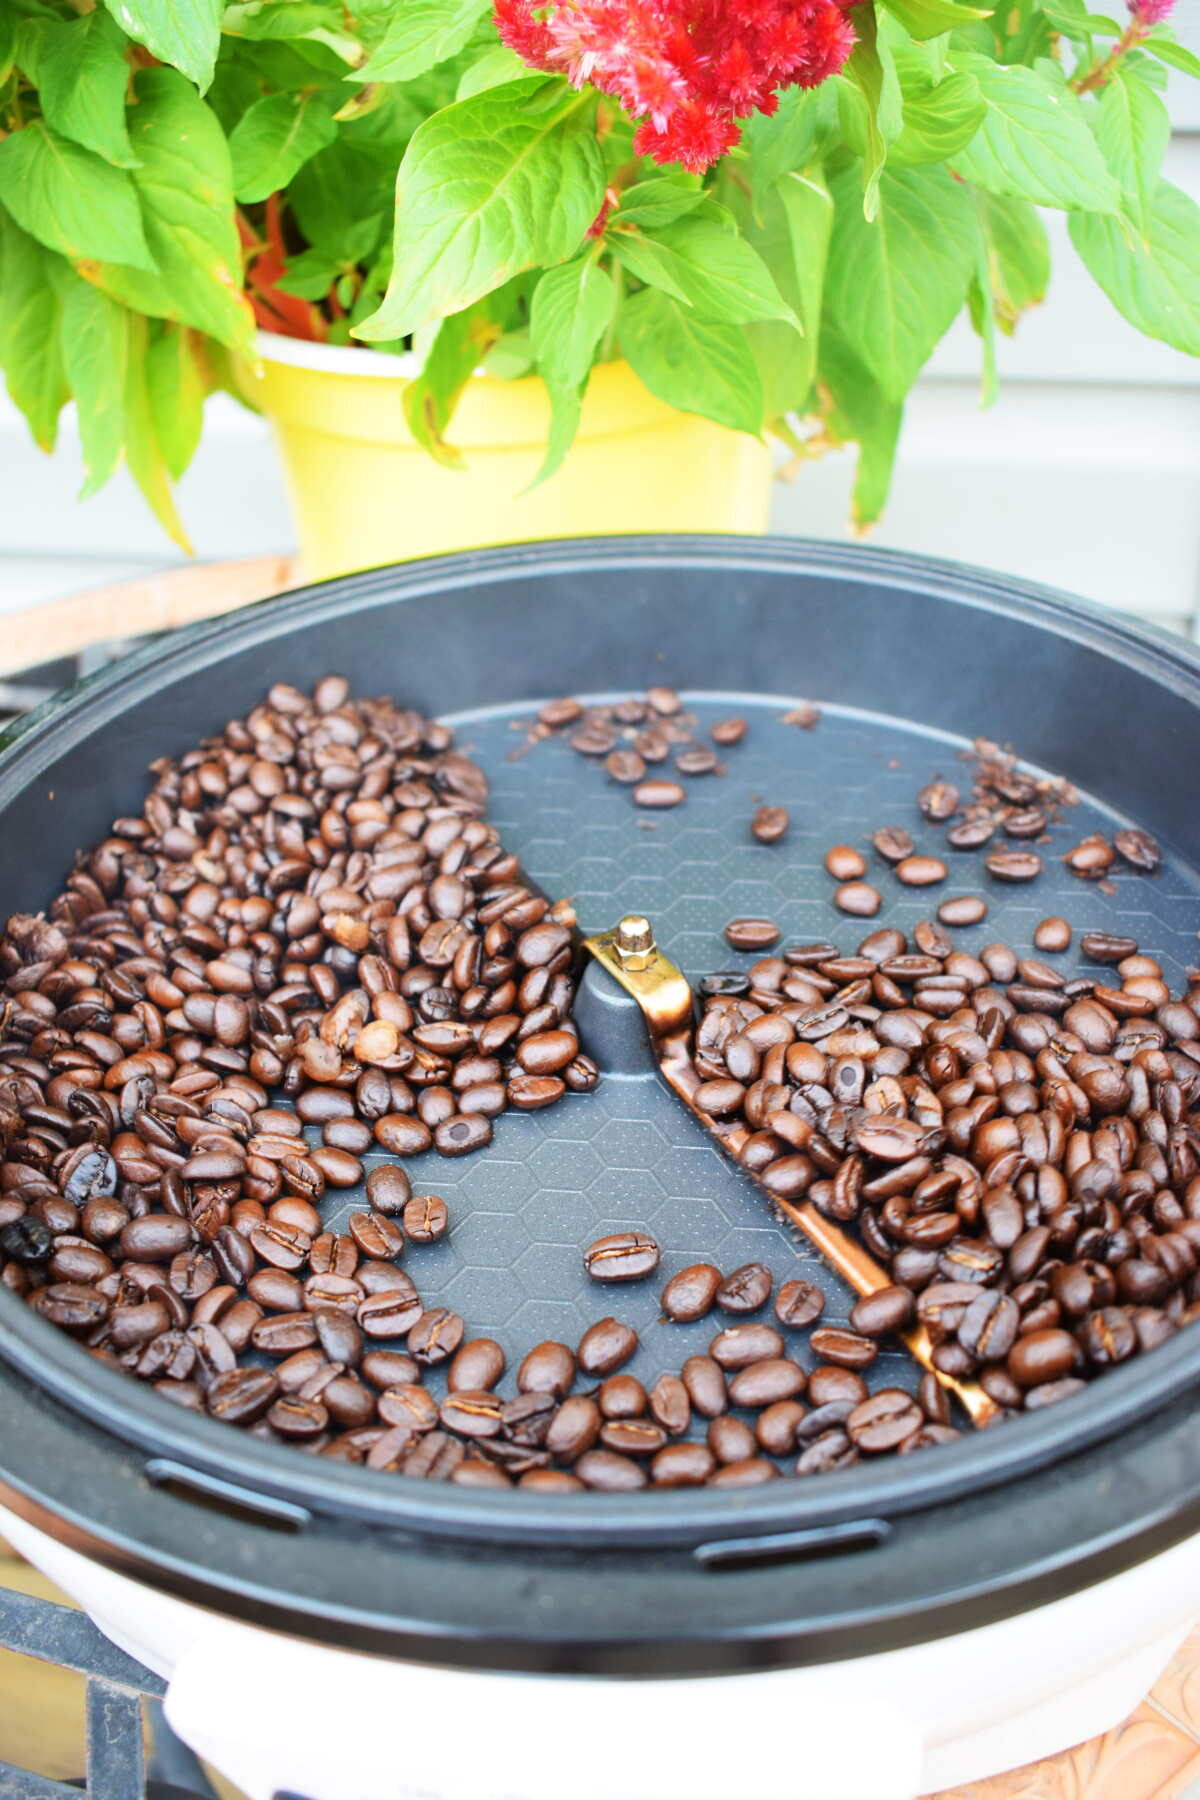 Open coffee roaster with dark coffee beans.